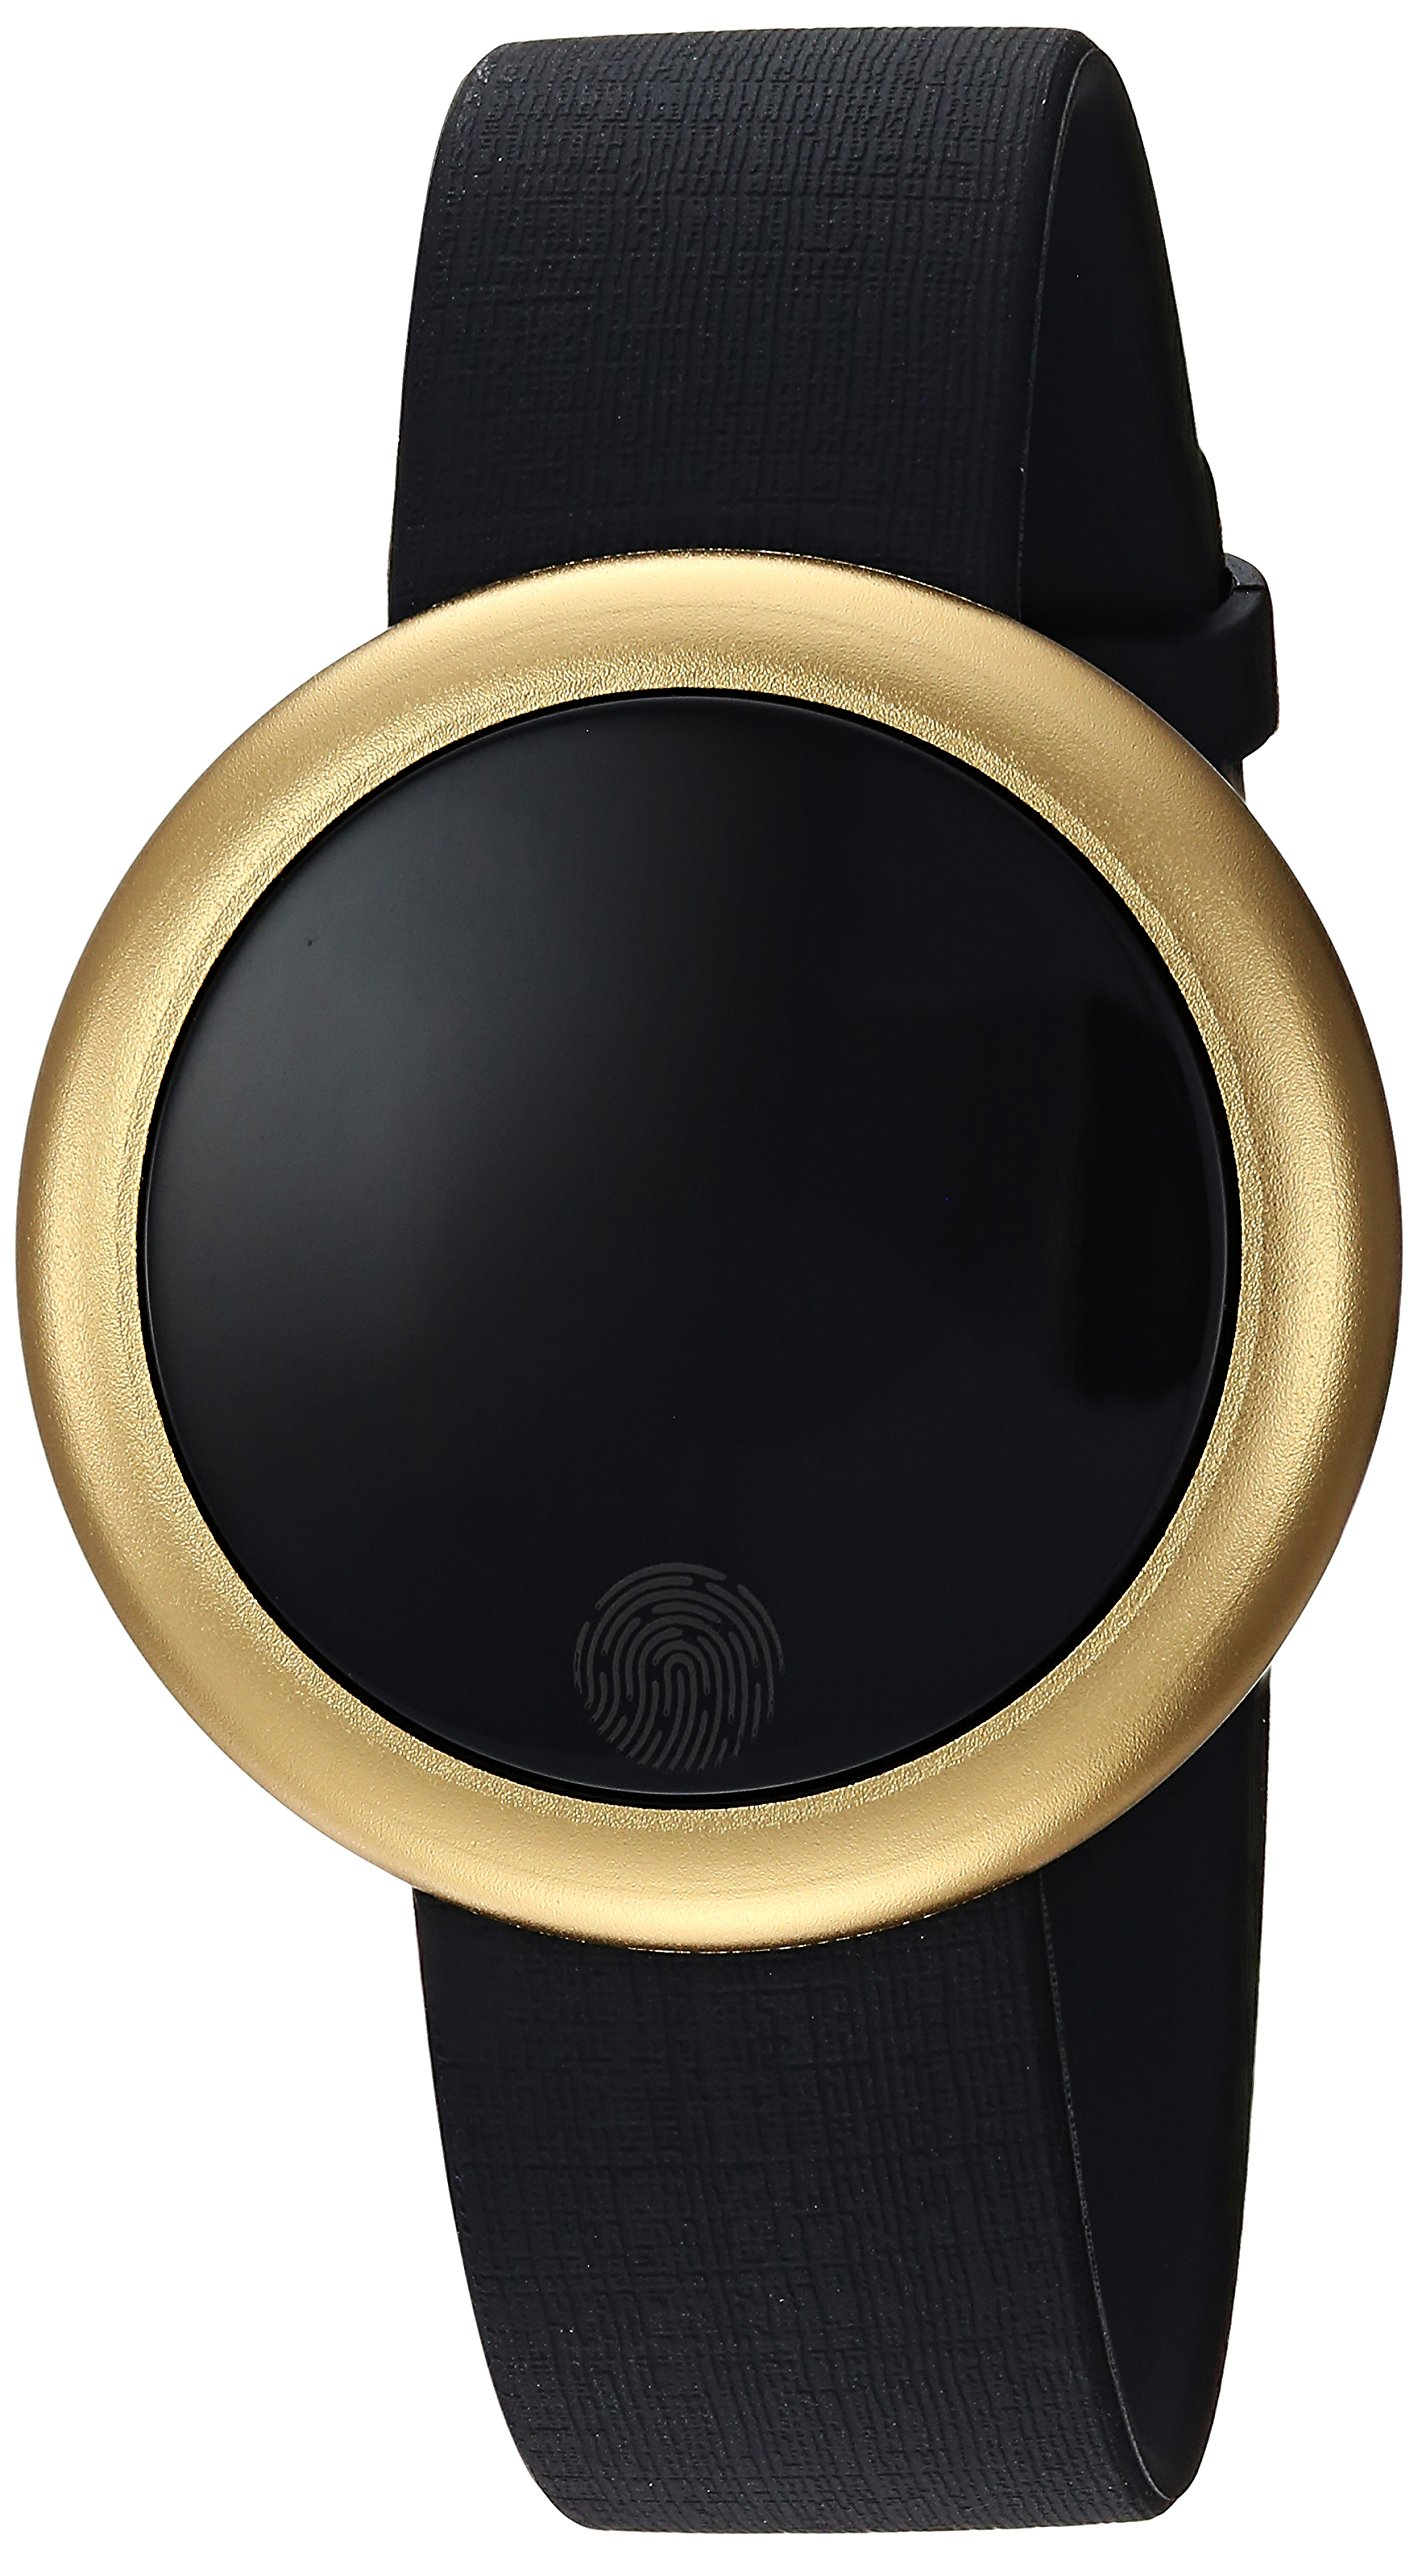 Emotion Unisex Metal and Rubber Smartwatch, Color: Gold-Tone, Black (Model: FMDEM002)